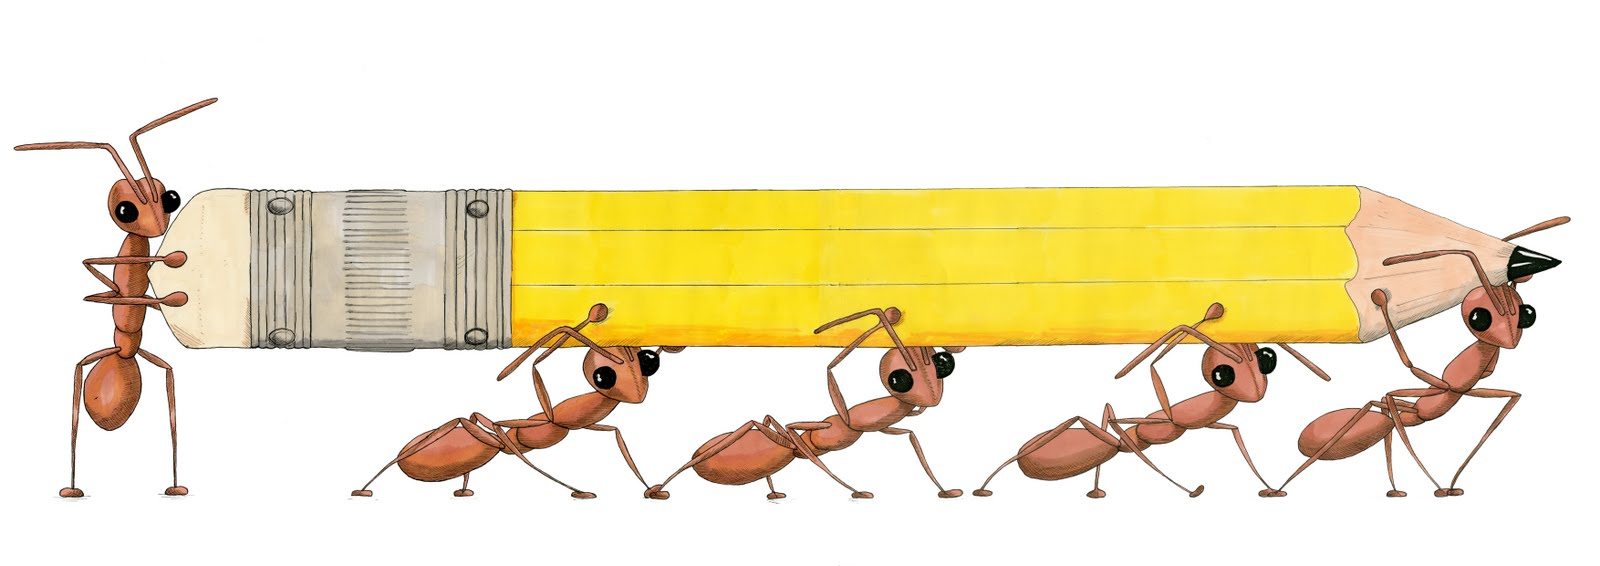 Marching Ants Clip Art N15 free image.